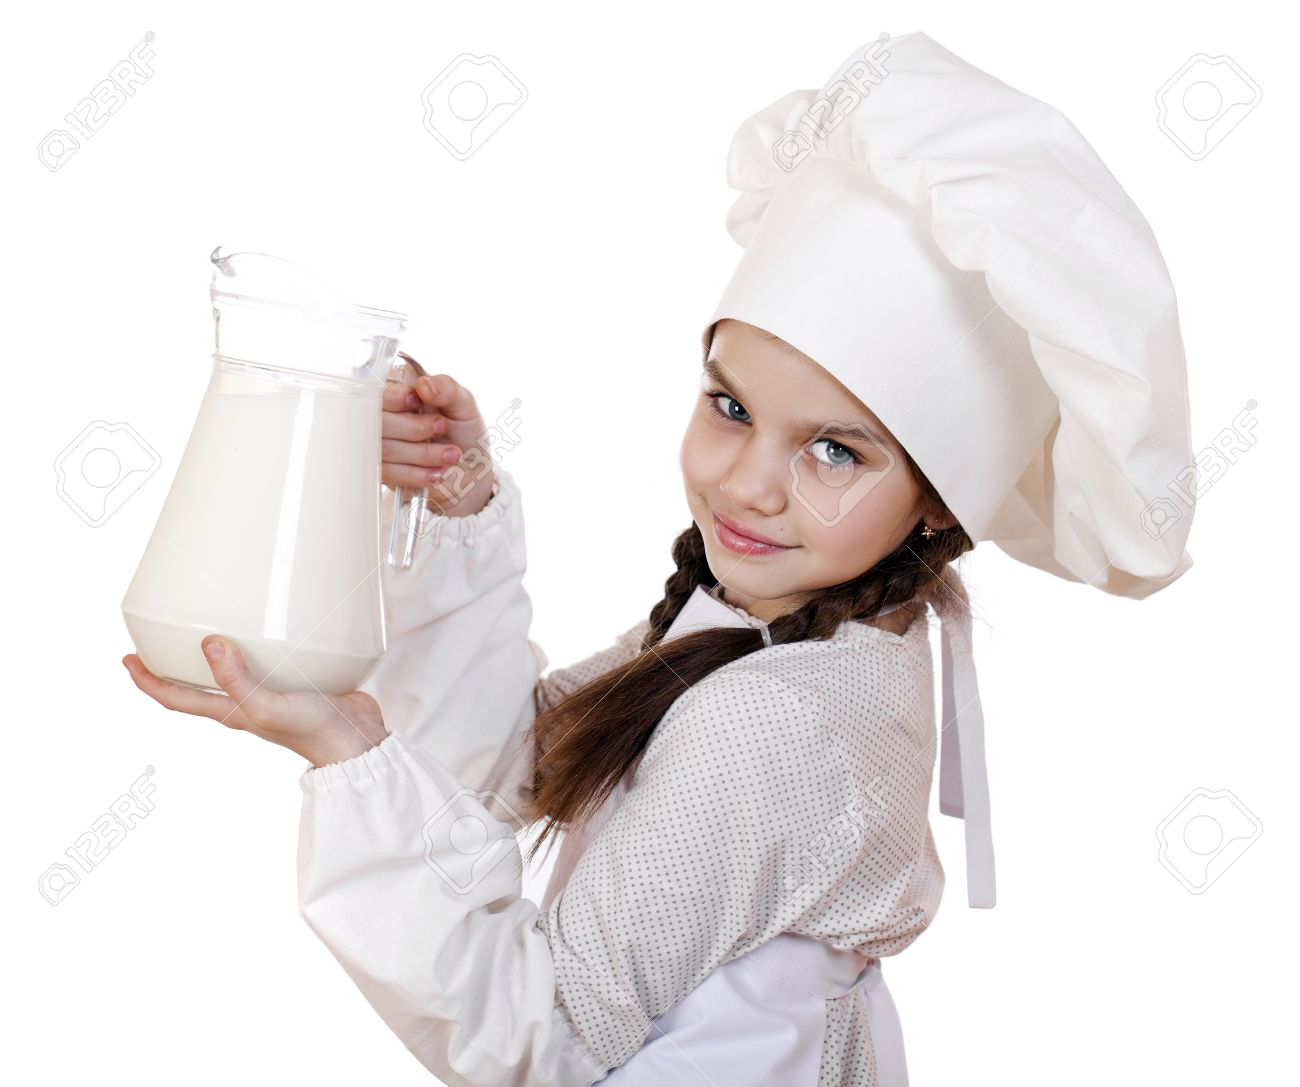 White apron girl - Cooking And People Concept Little Girl In A White Apron Holding A Jug Of Milk